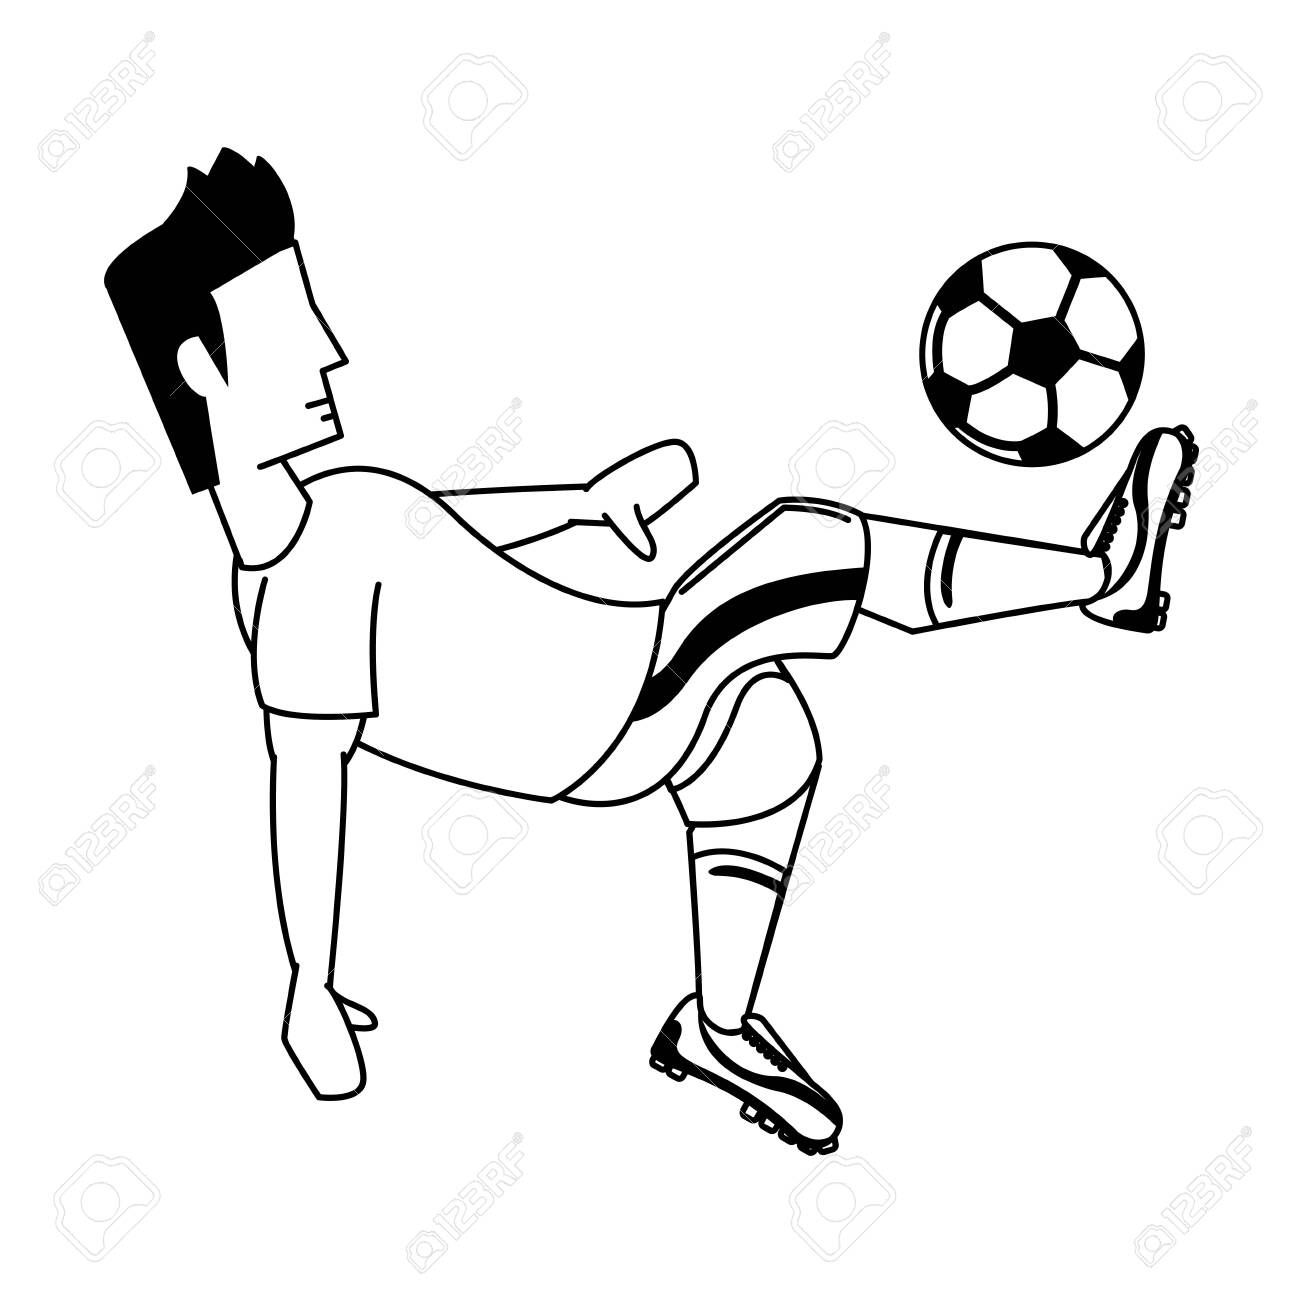 Soccer Player Kicking Ball Cartoon Isolated Vector Illustration Graphic Design Ill Social Media Design Graphics Graphic Design Illustration Illustration Design